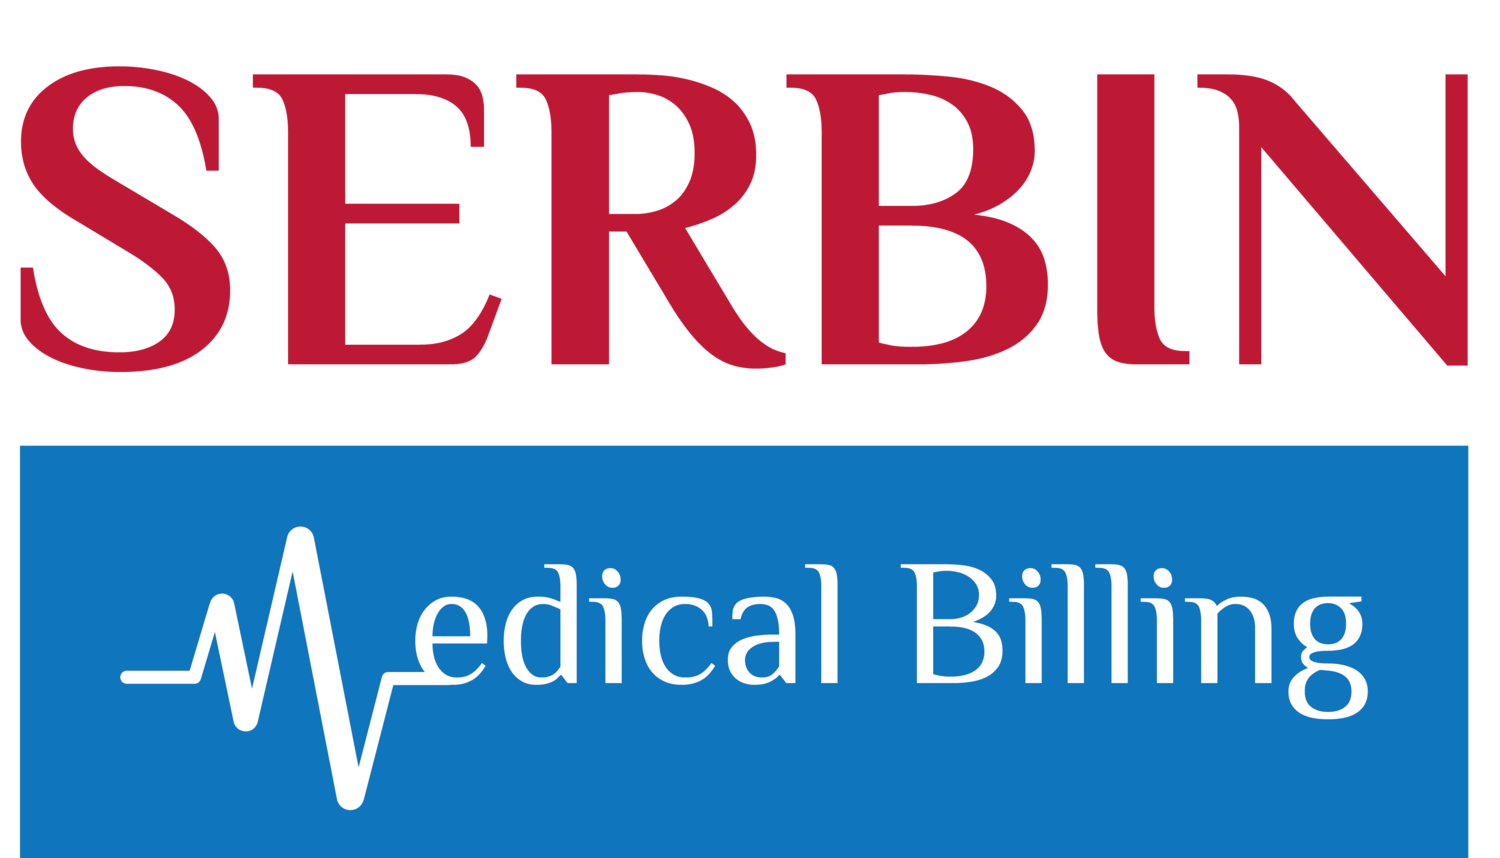 Serbin Medical Billing | ASC Billing and Revenue Cycle Experts